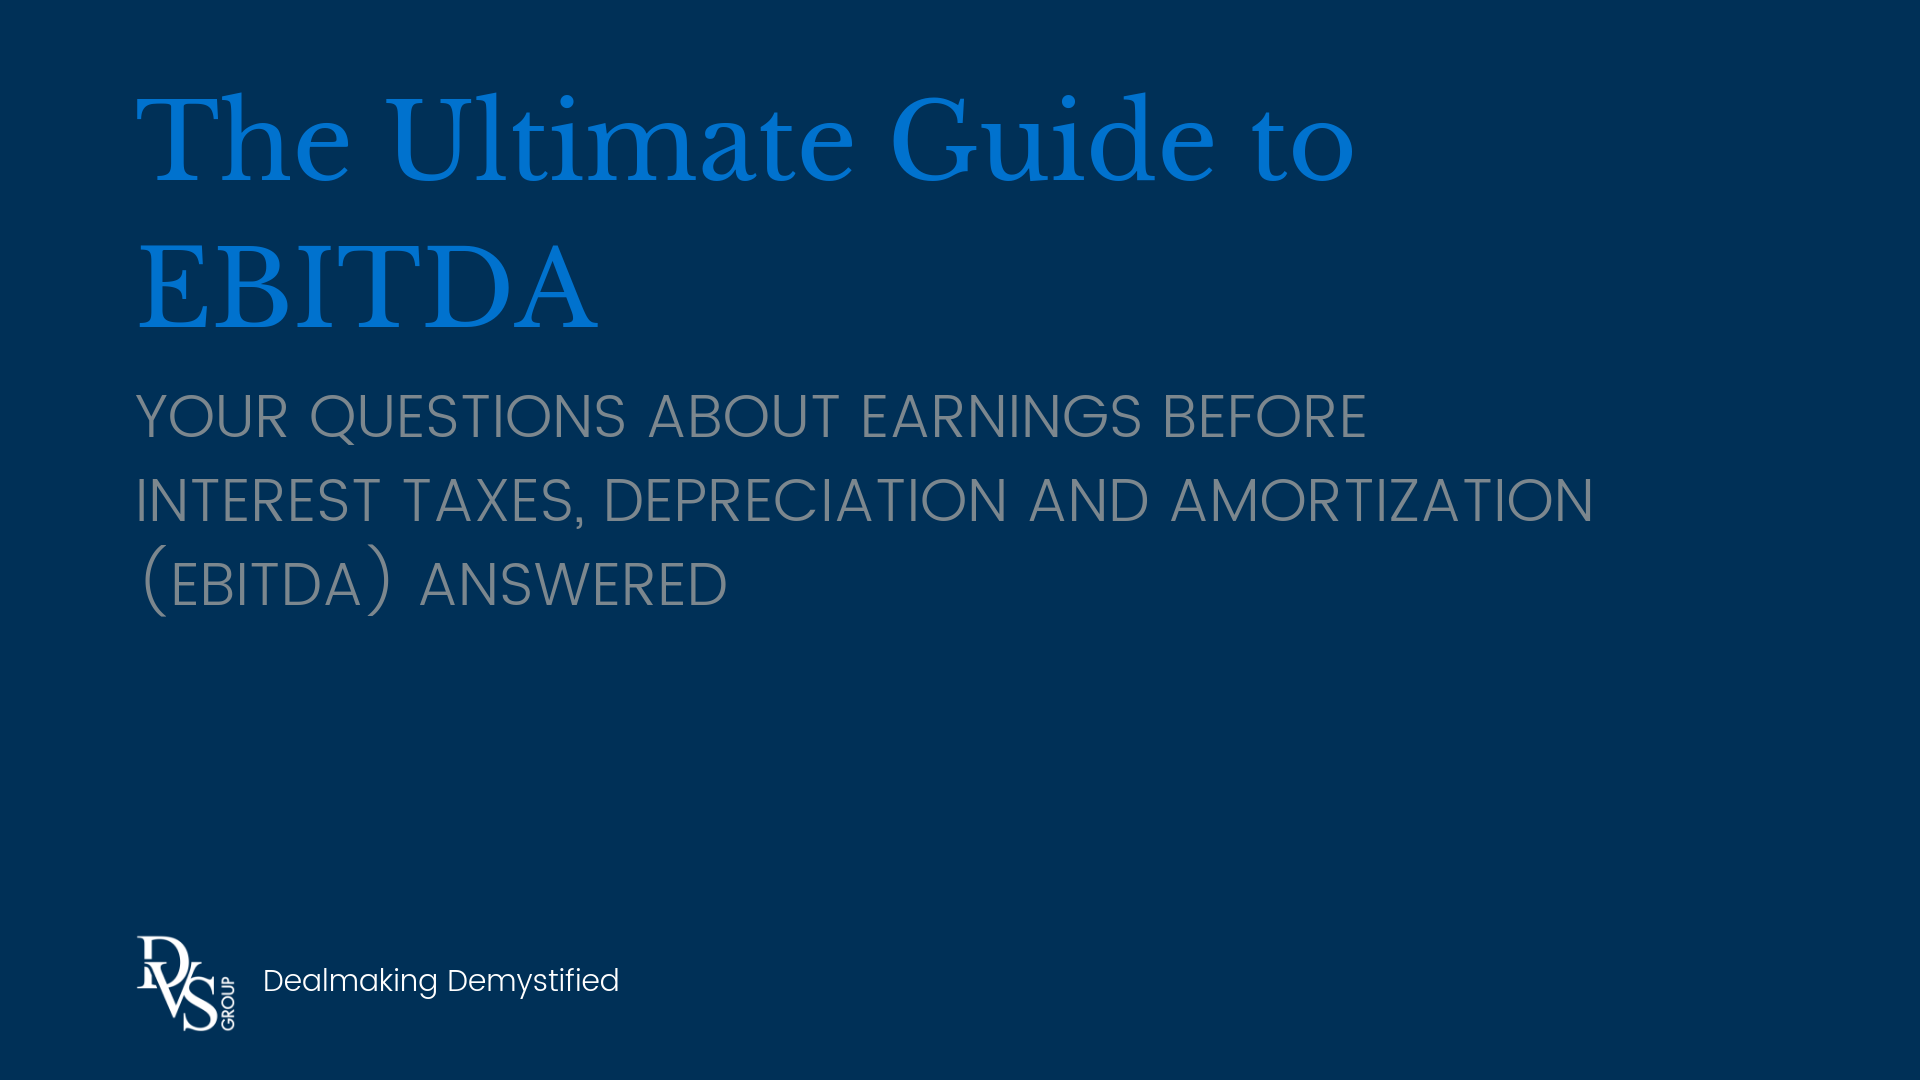 The Ultimate Guide to EBTIDA